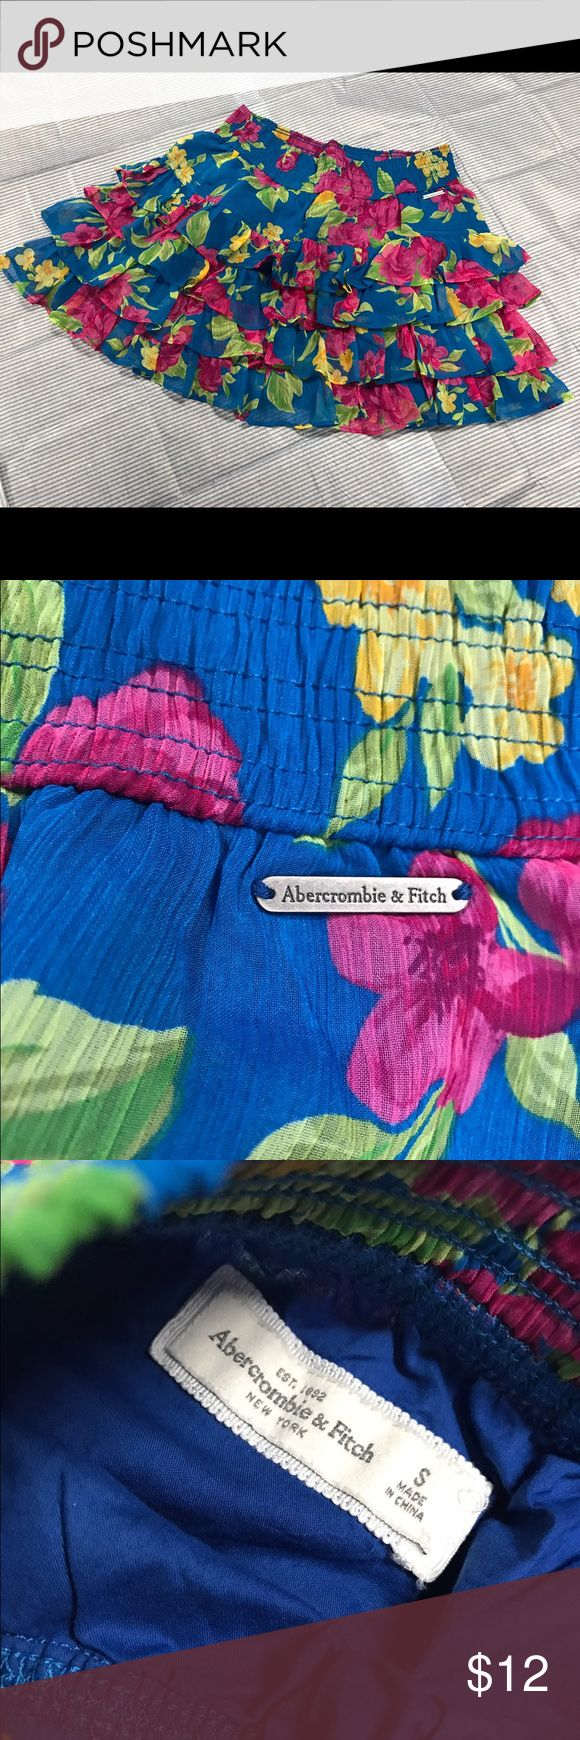 Brand new Abercrombie and fitch floral skirt Brand New with tags. Three layers, cotton lining, polyester blend surface, Machine wash cold Abercrombie & Fitch Skirts Mini